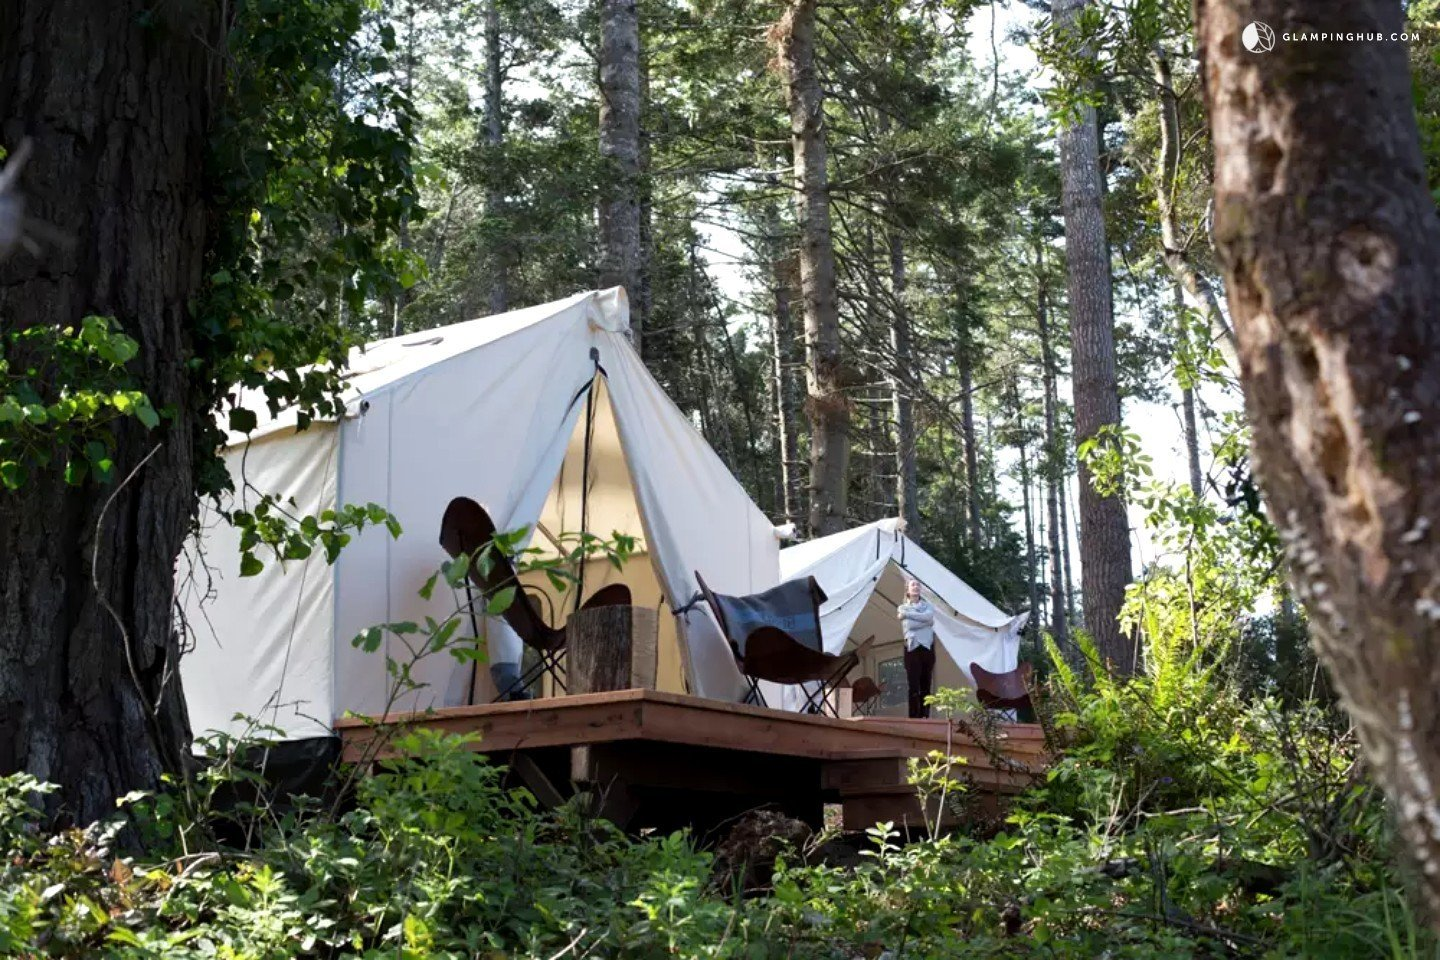 These roomy safari tents are 12-feet by 14-feet and housed on wooden platforms. They come fully outfitted with a queen-size bed, down comforter, and cotton linens so when there is a chill in the air, glampers know they will be warm and cozy at night. The tent has its own private deck complete with sling back chairs and a fire ring.  Photo 2 of 14 in 12 Terrifically Glamorous Camping Options